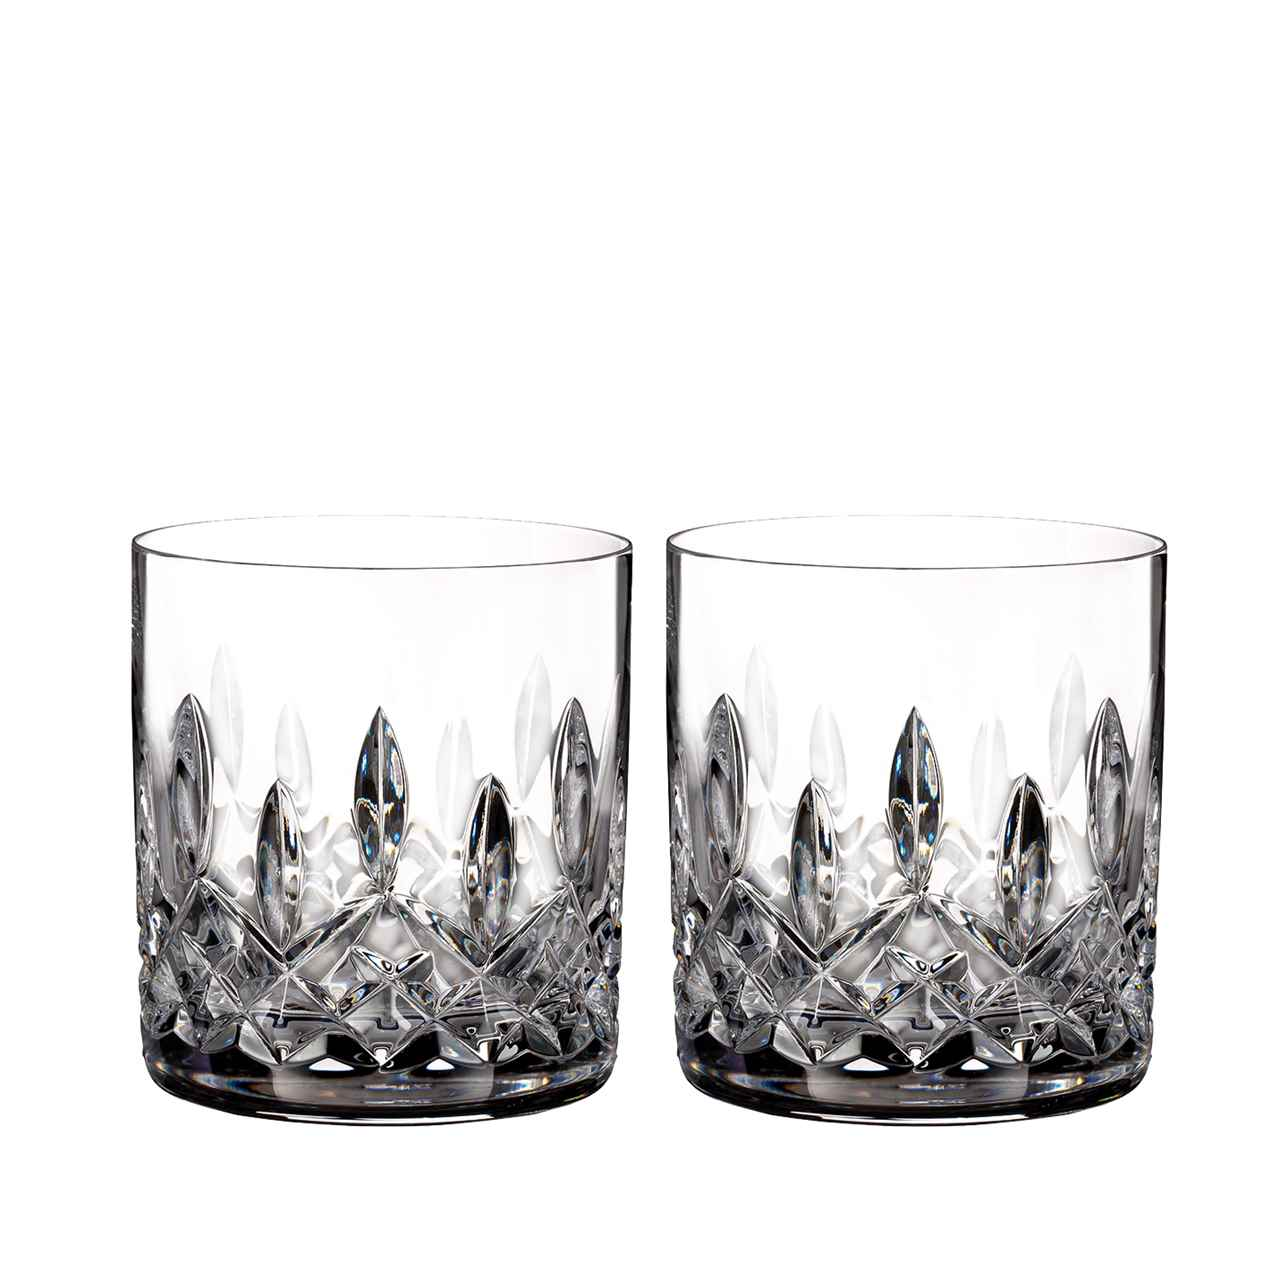 Lismore Connoisseur Straight Sided Tumbler, Set of 2